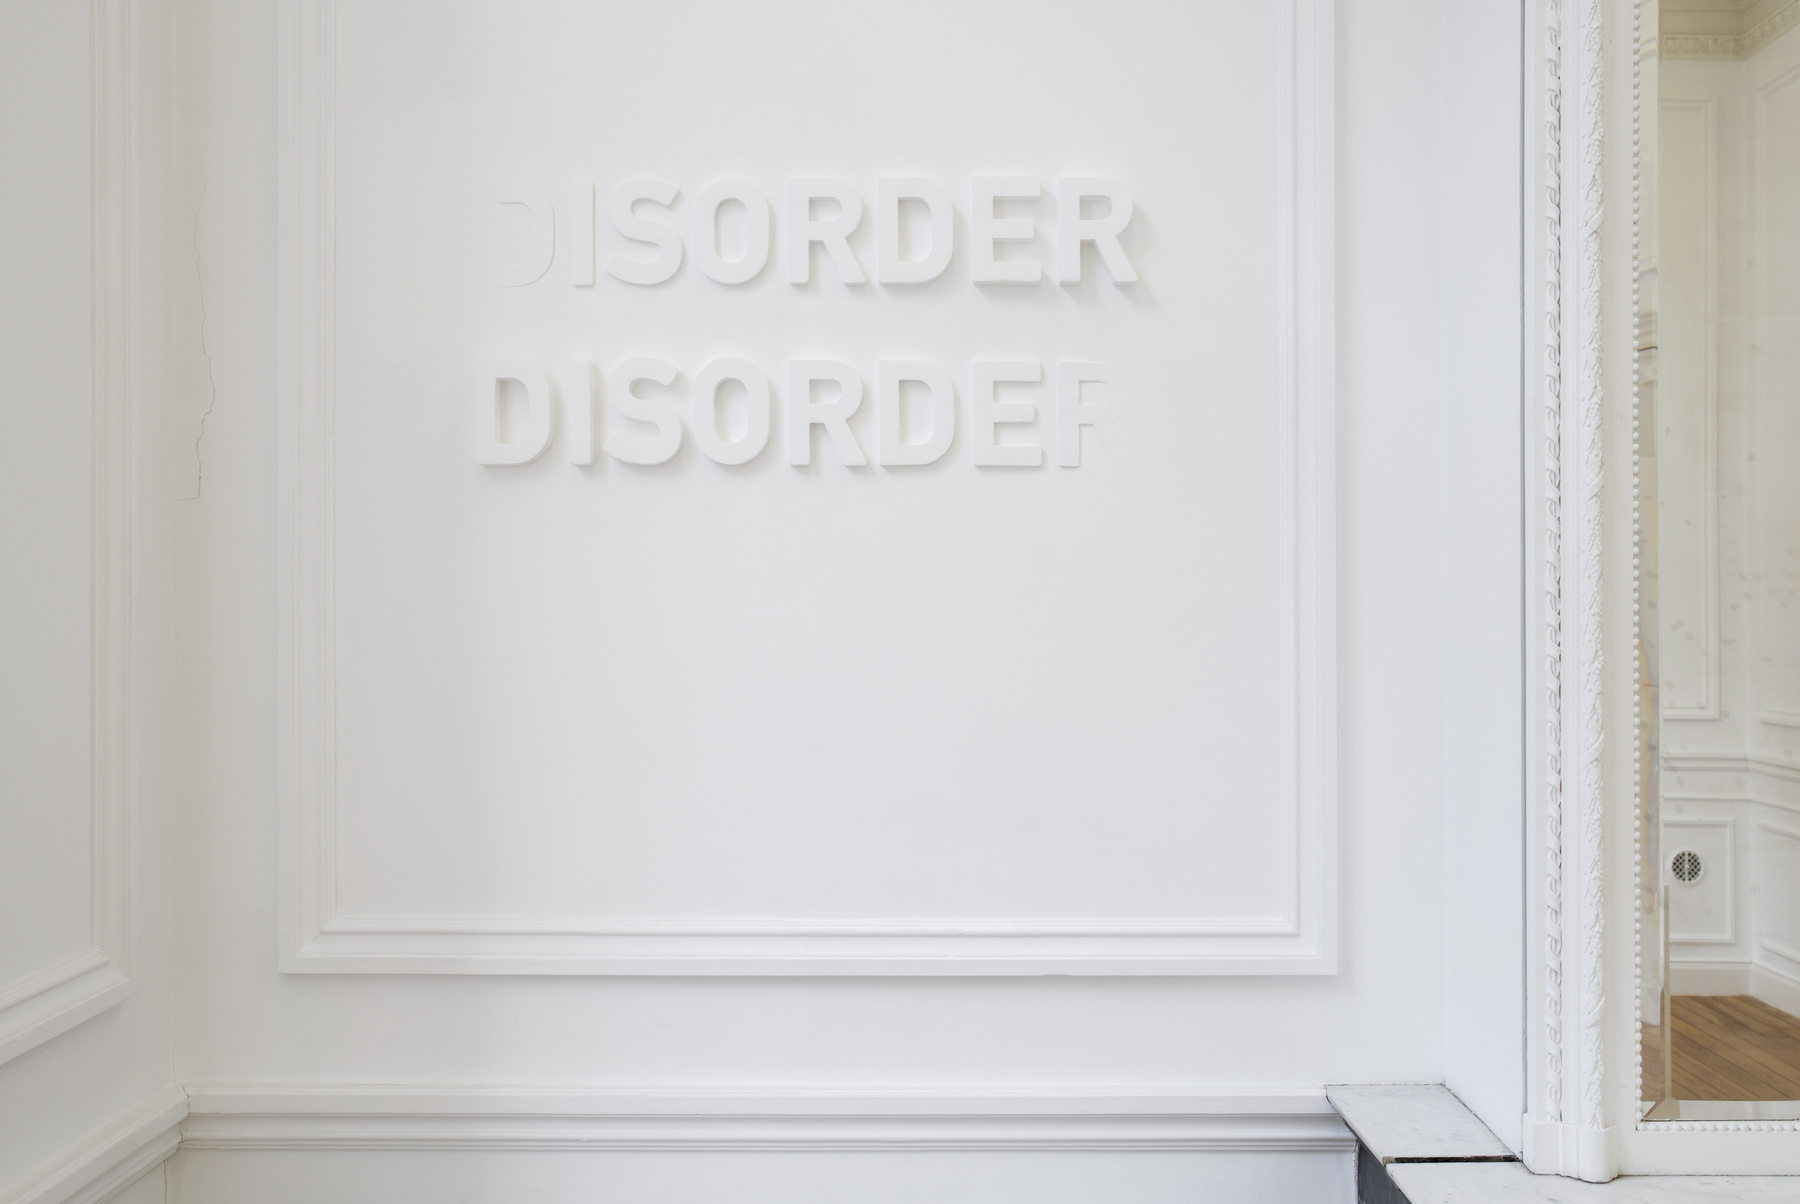 Melik Ohanian, Deviation (04) — Disorder, 2014, Letters in polystyrene and plaster, 60 x 120 cm, 1_3